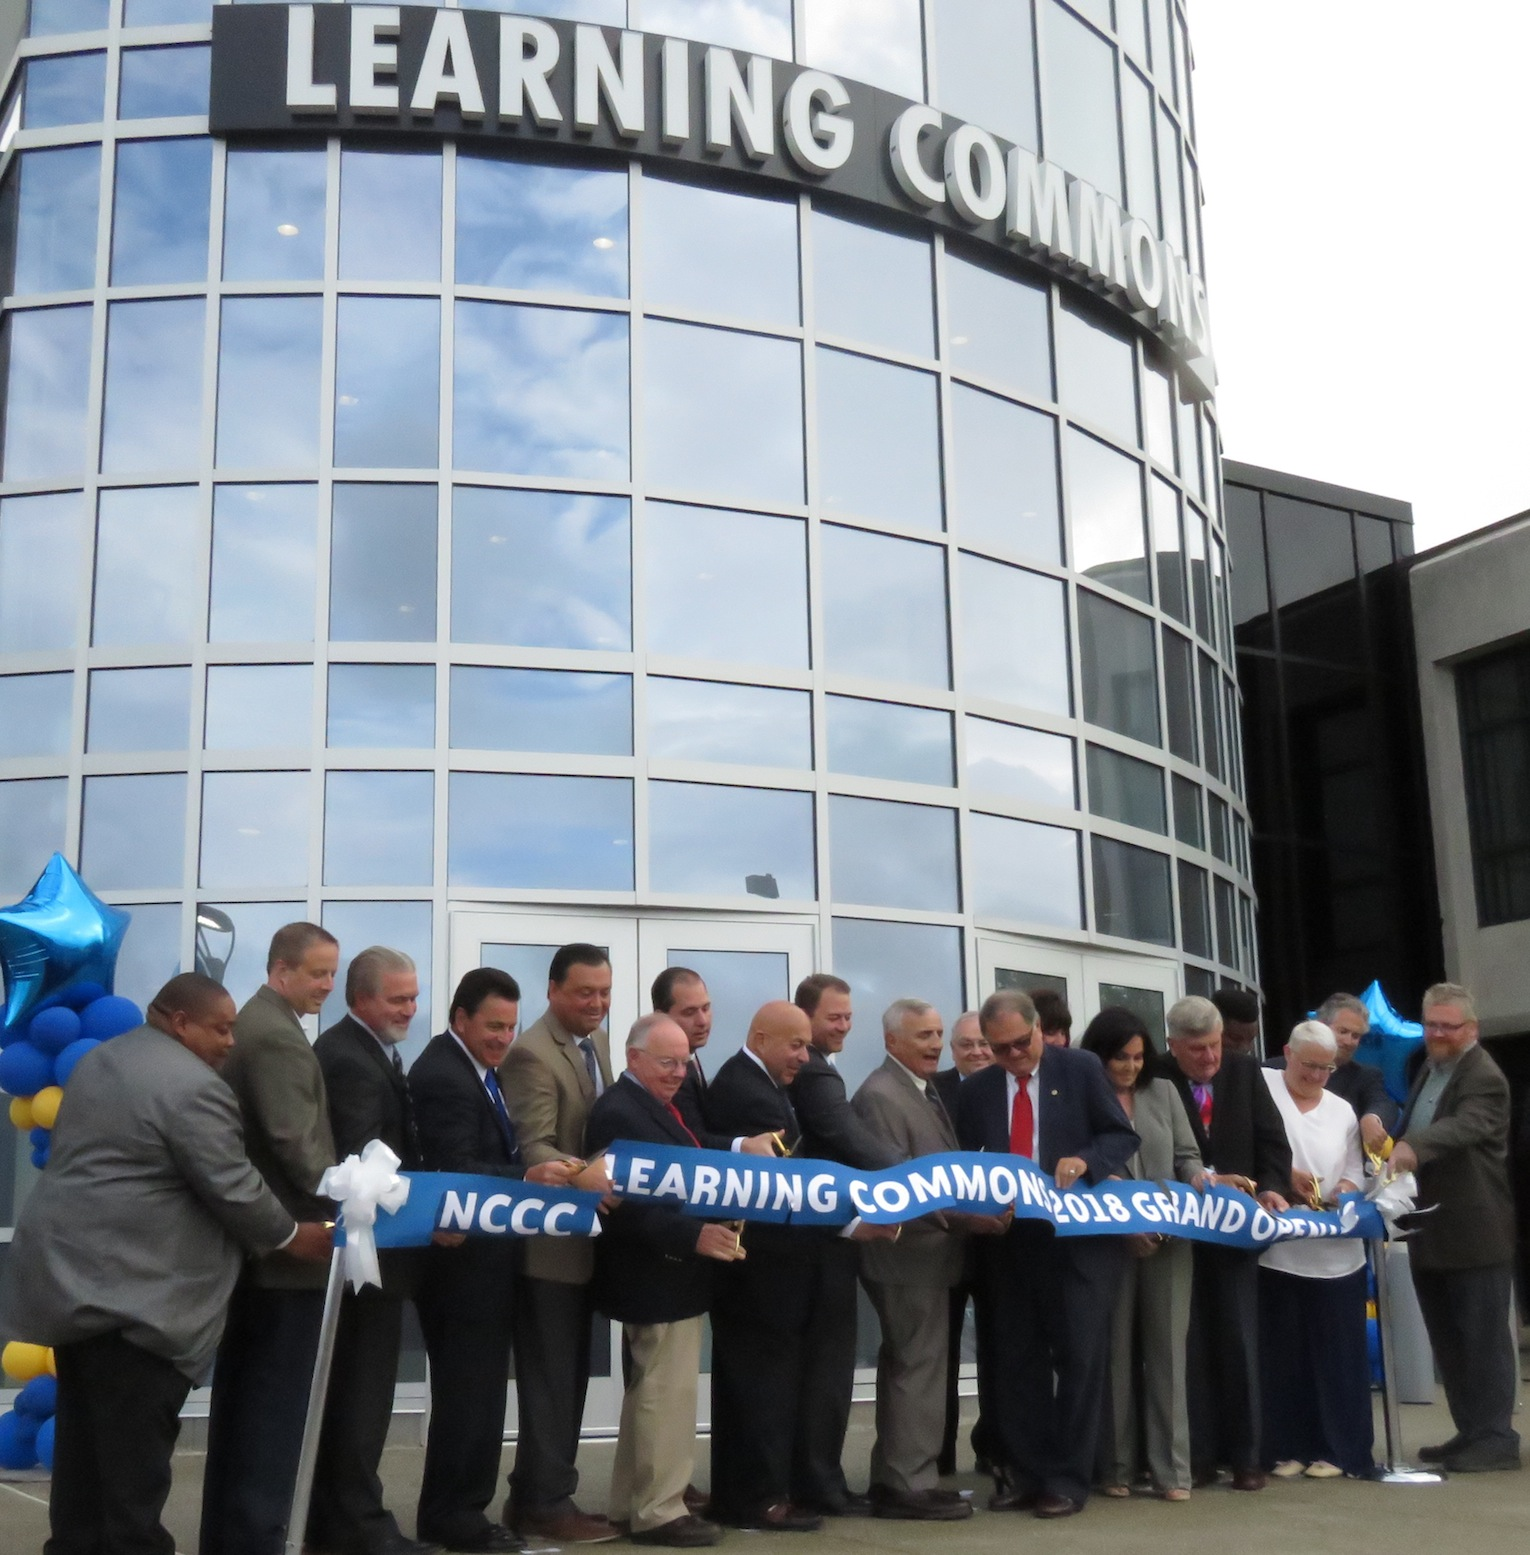 Niagara County Community College trustees, elected officials and more cut the ribbon to the new Learning Commons facility at the Sanborn campus. (Photos by David Yarger)